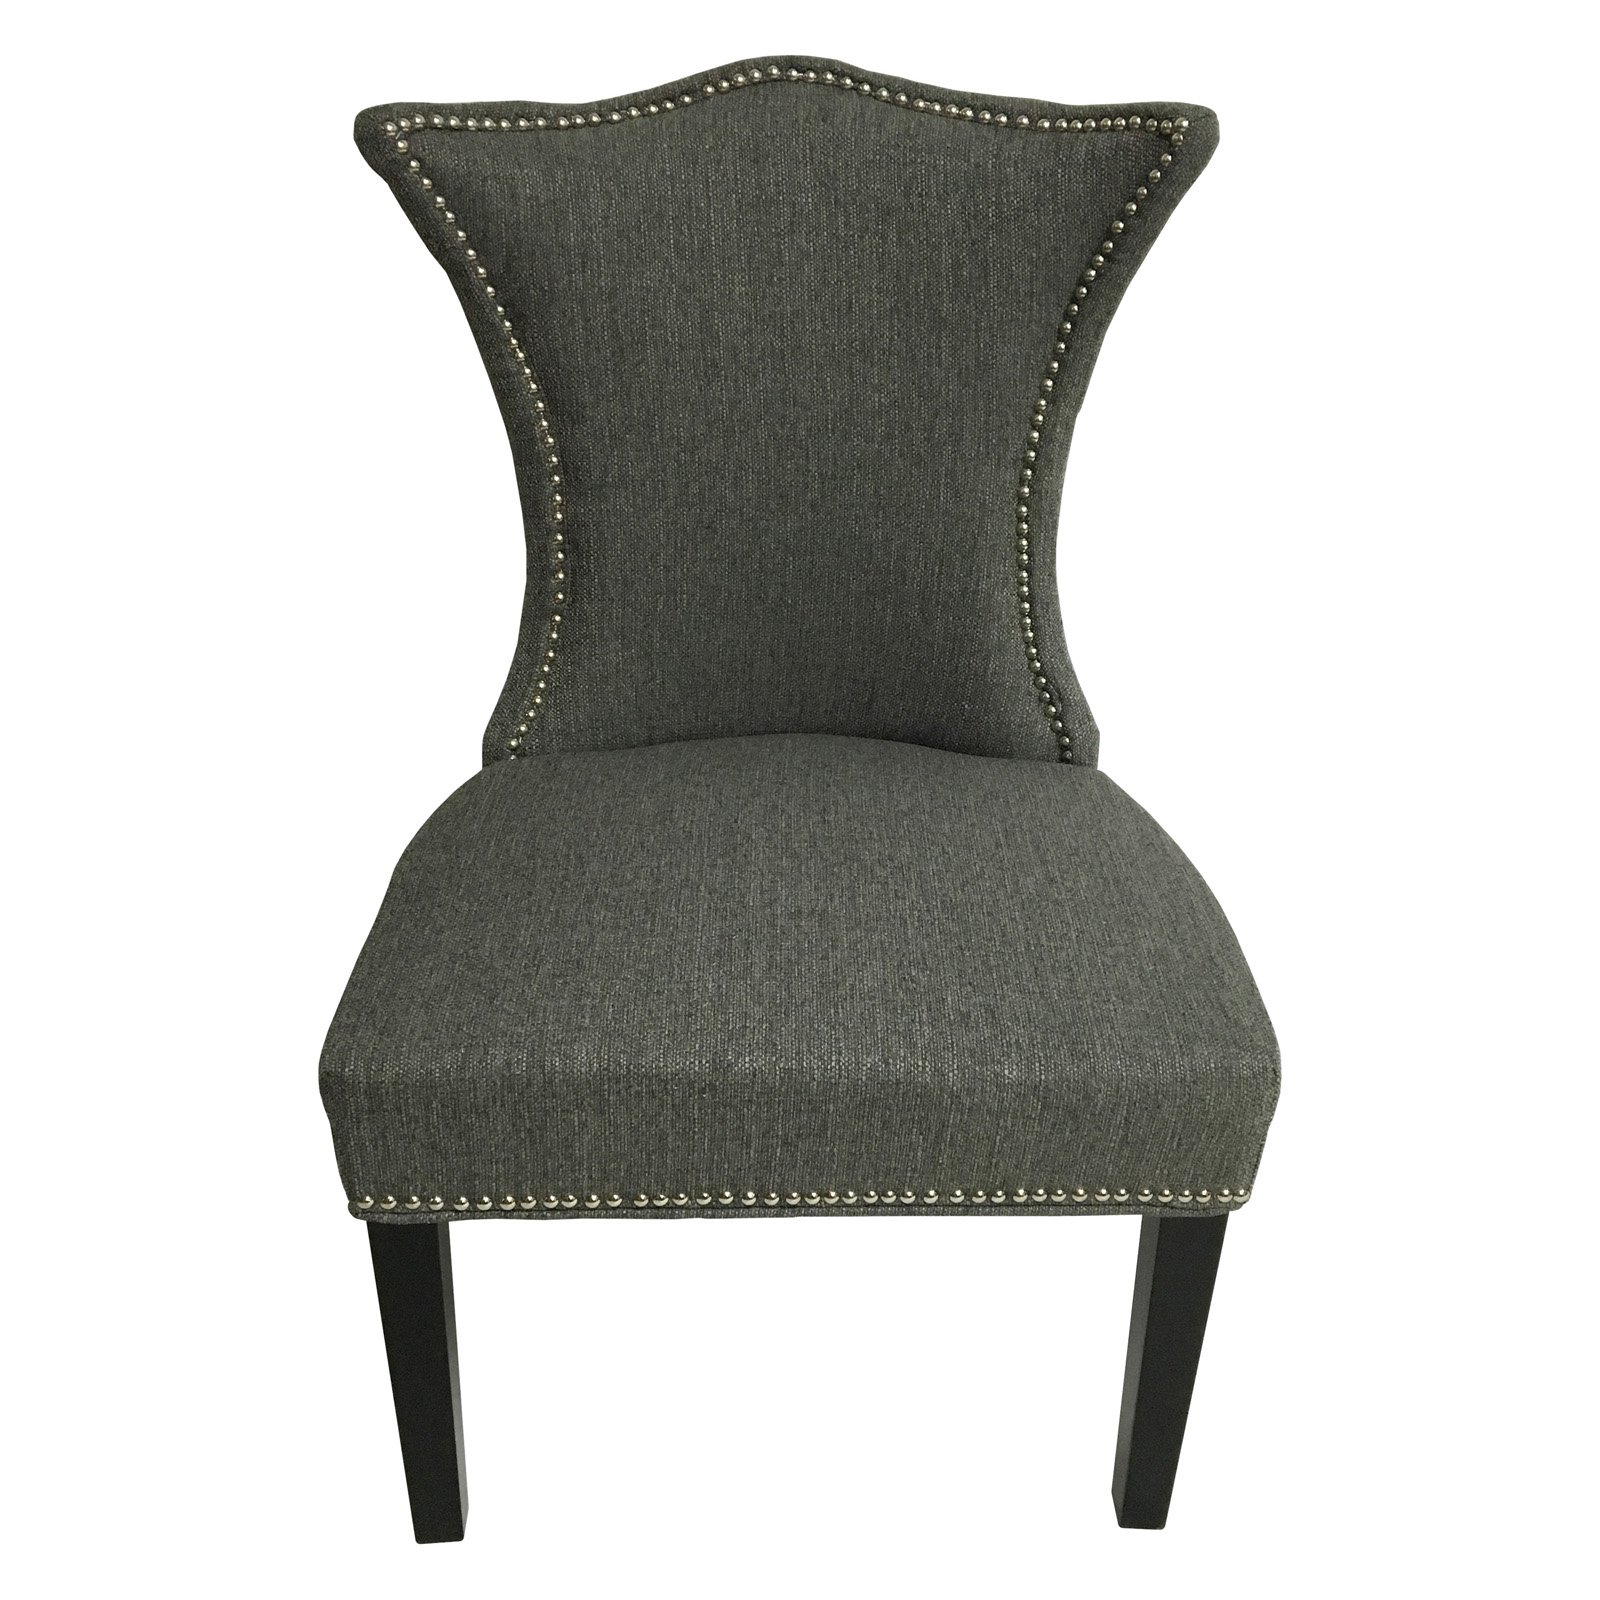 chair photo frame hd parson chairs set of 4 couture linda stallion linen dining walmart com